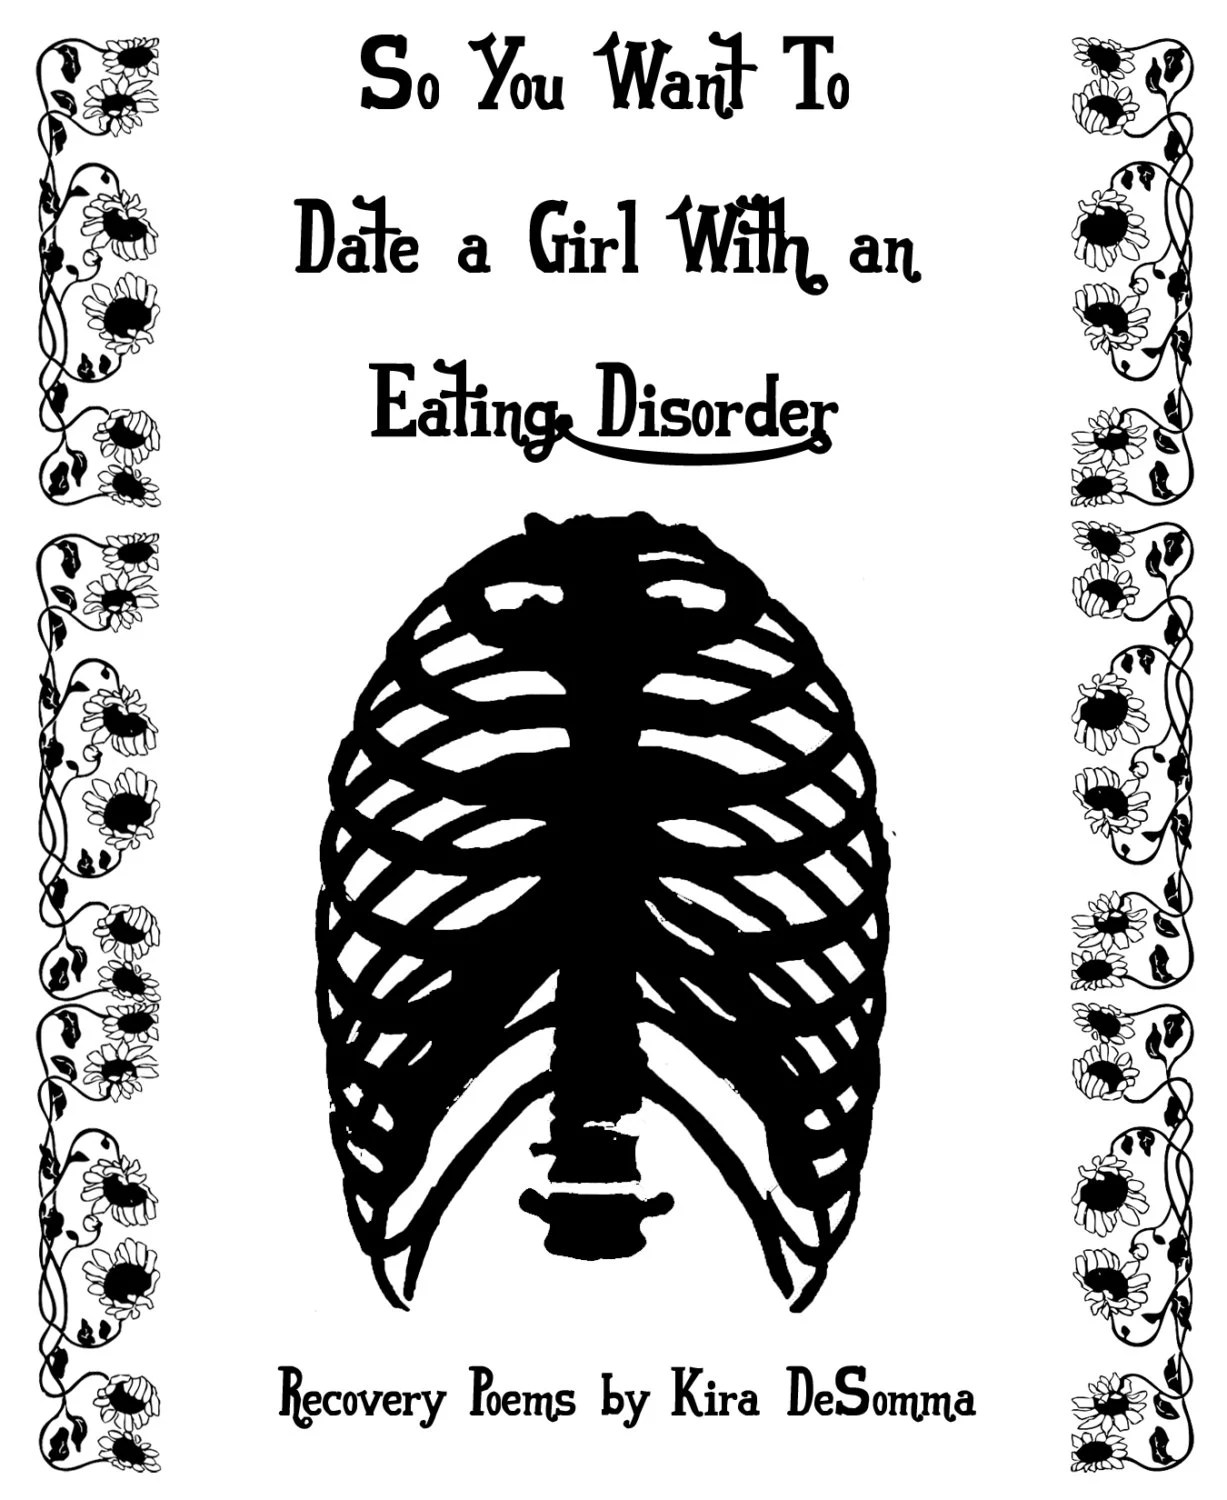 So You Want To Date a Girl with an Eating Disorder: Recovery